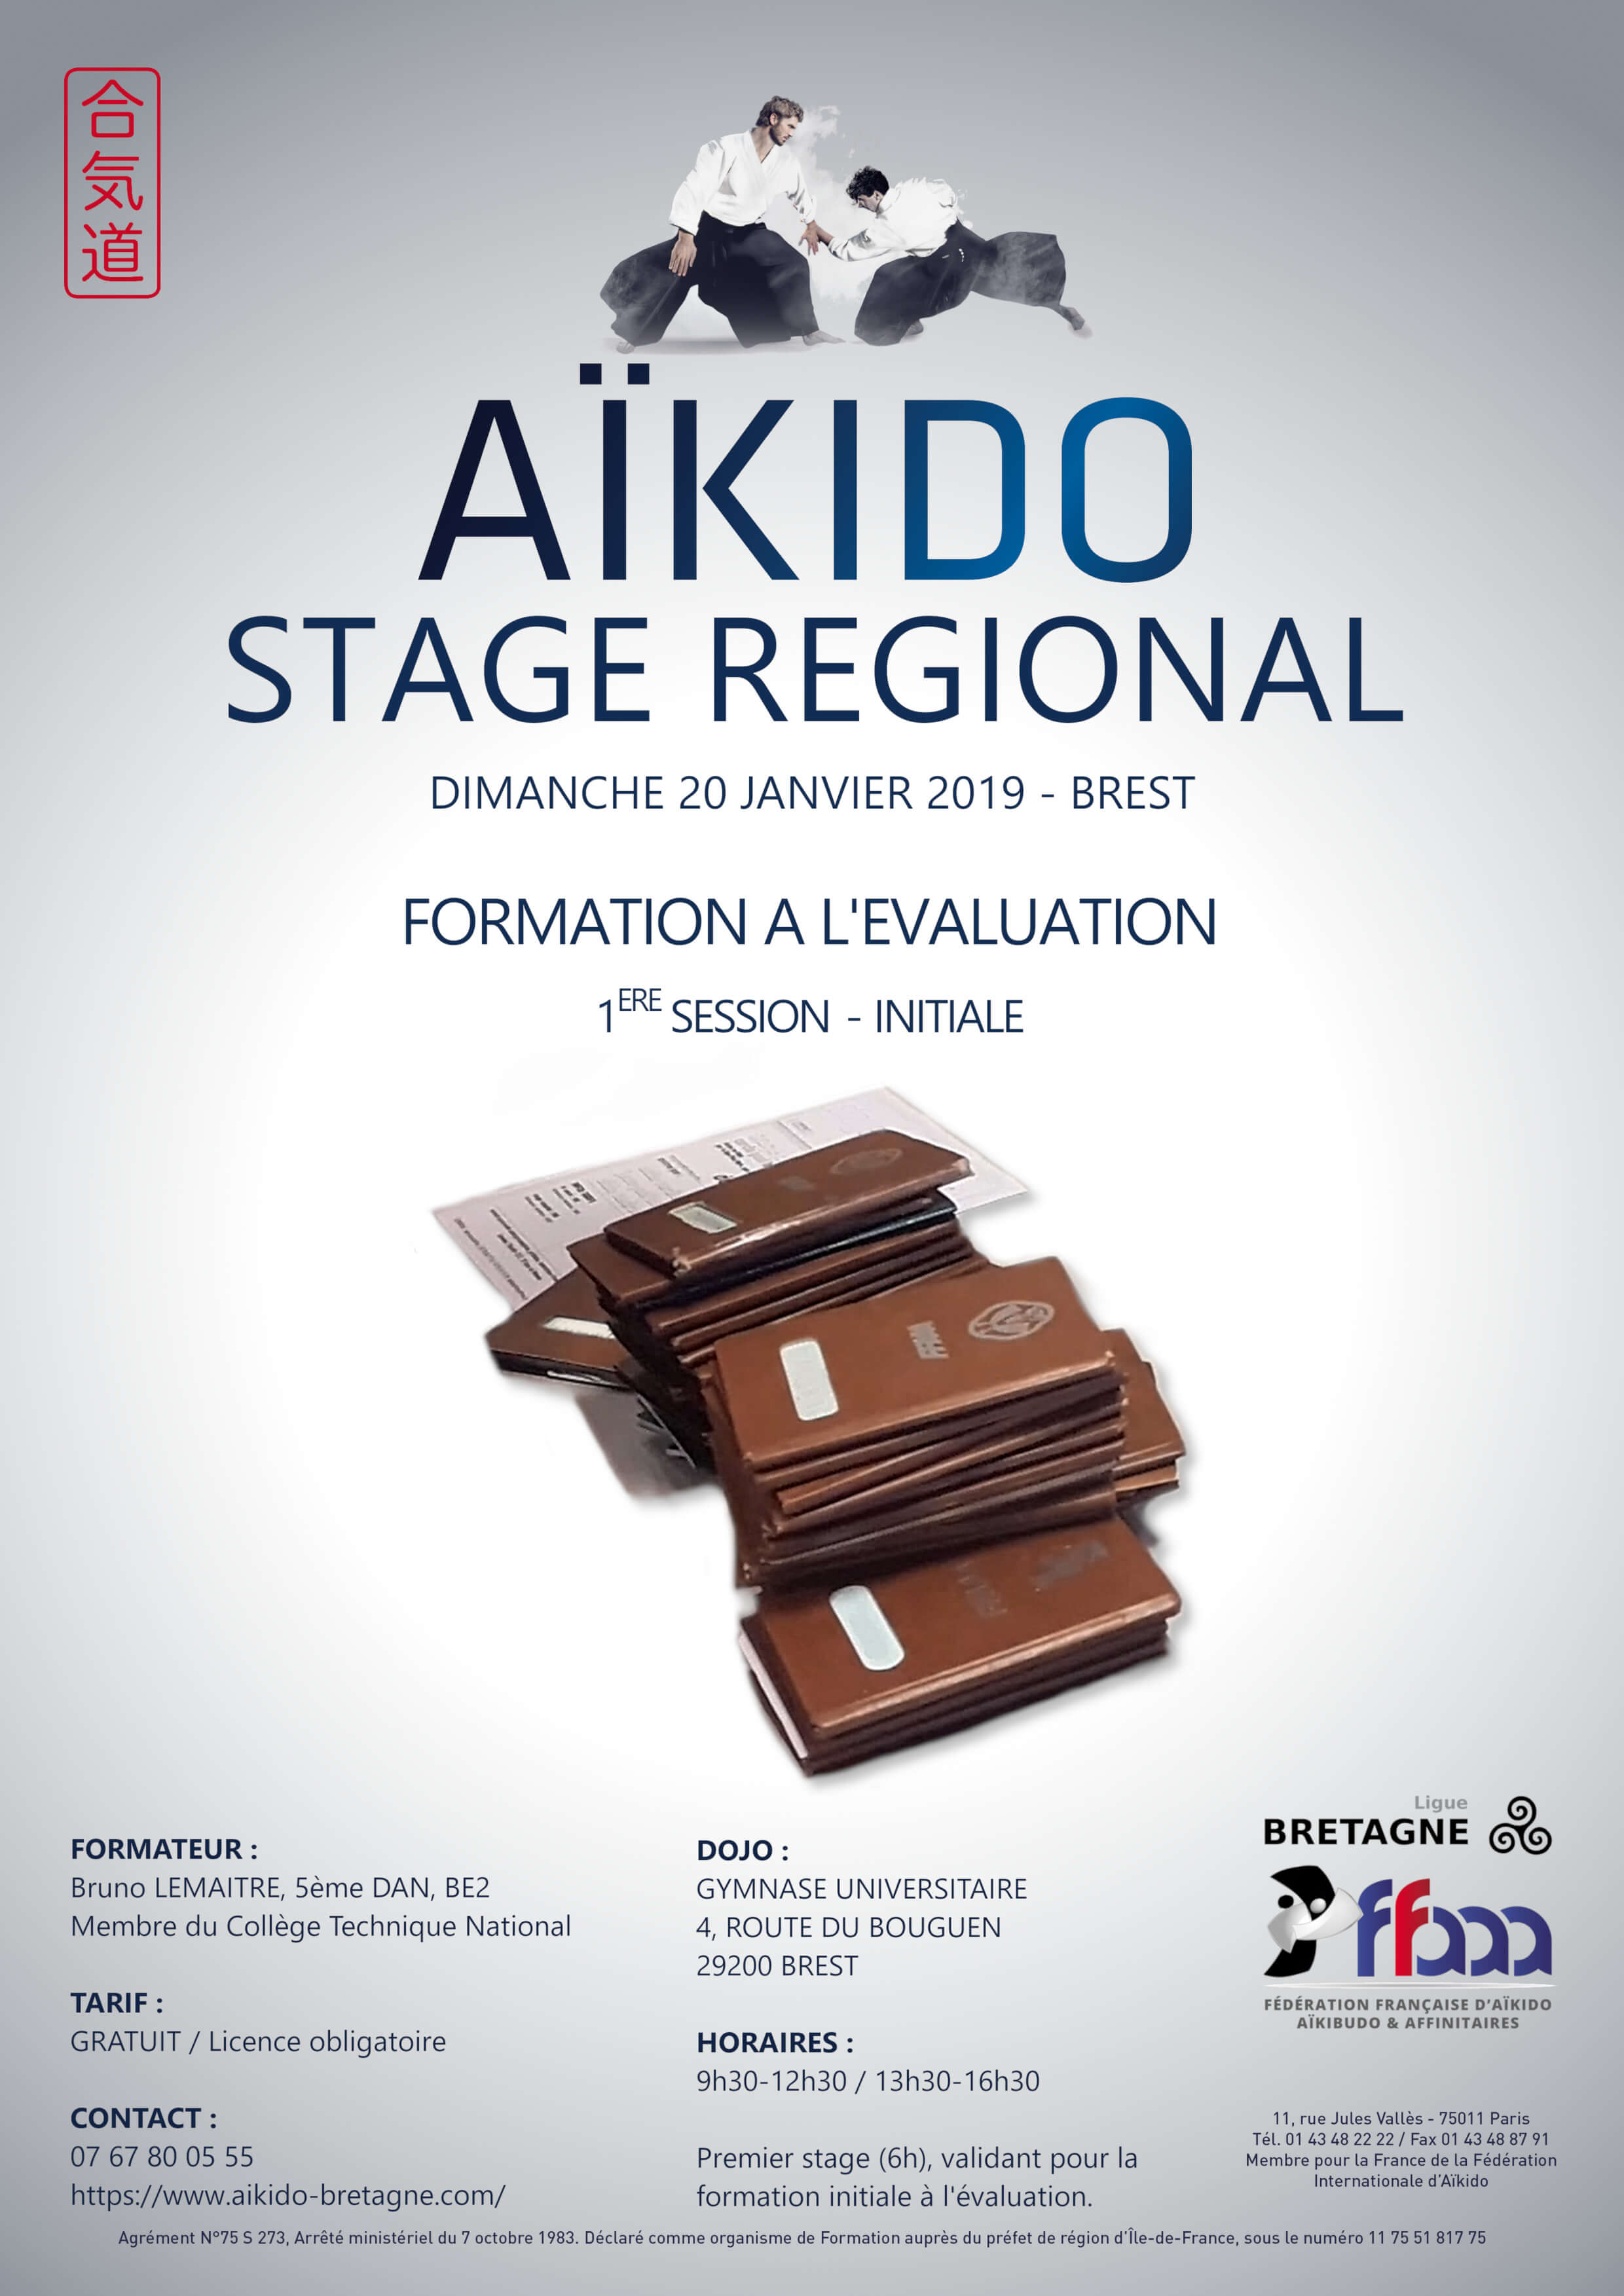 stage de formation l 39 valuation initiale a kido 20 janvier 2019 a kido bretagne ligue ffaaa. Black Bedroom Furniture Sets. Home Design Ideas